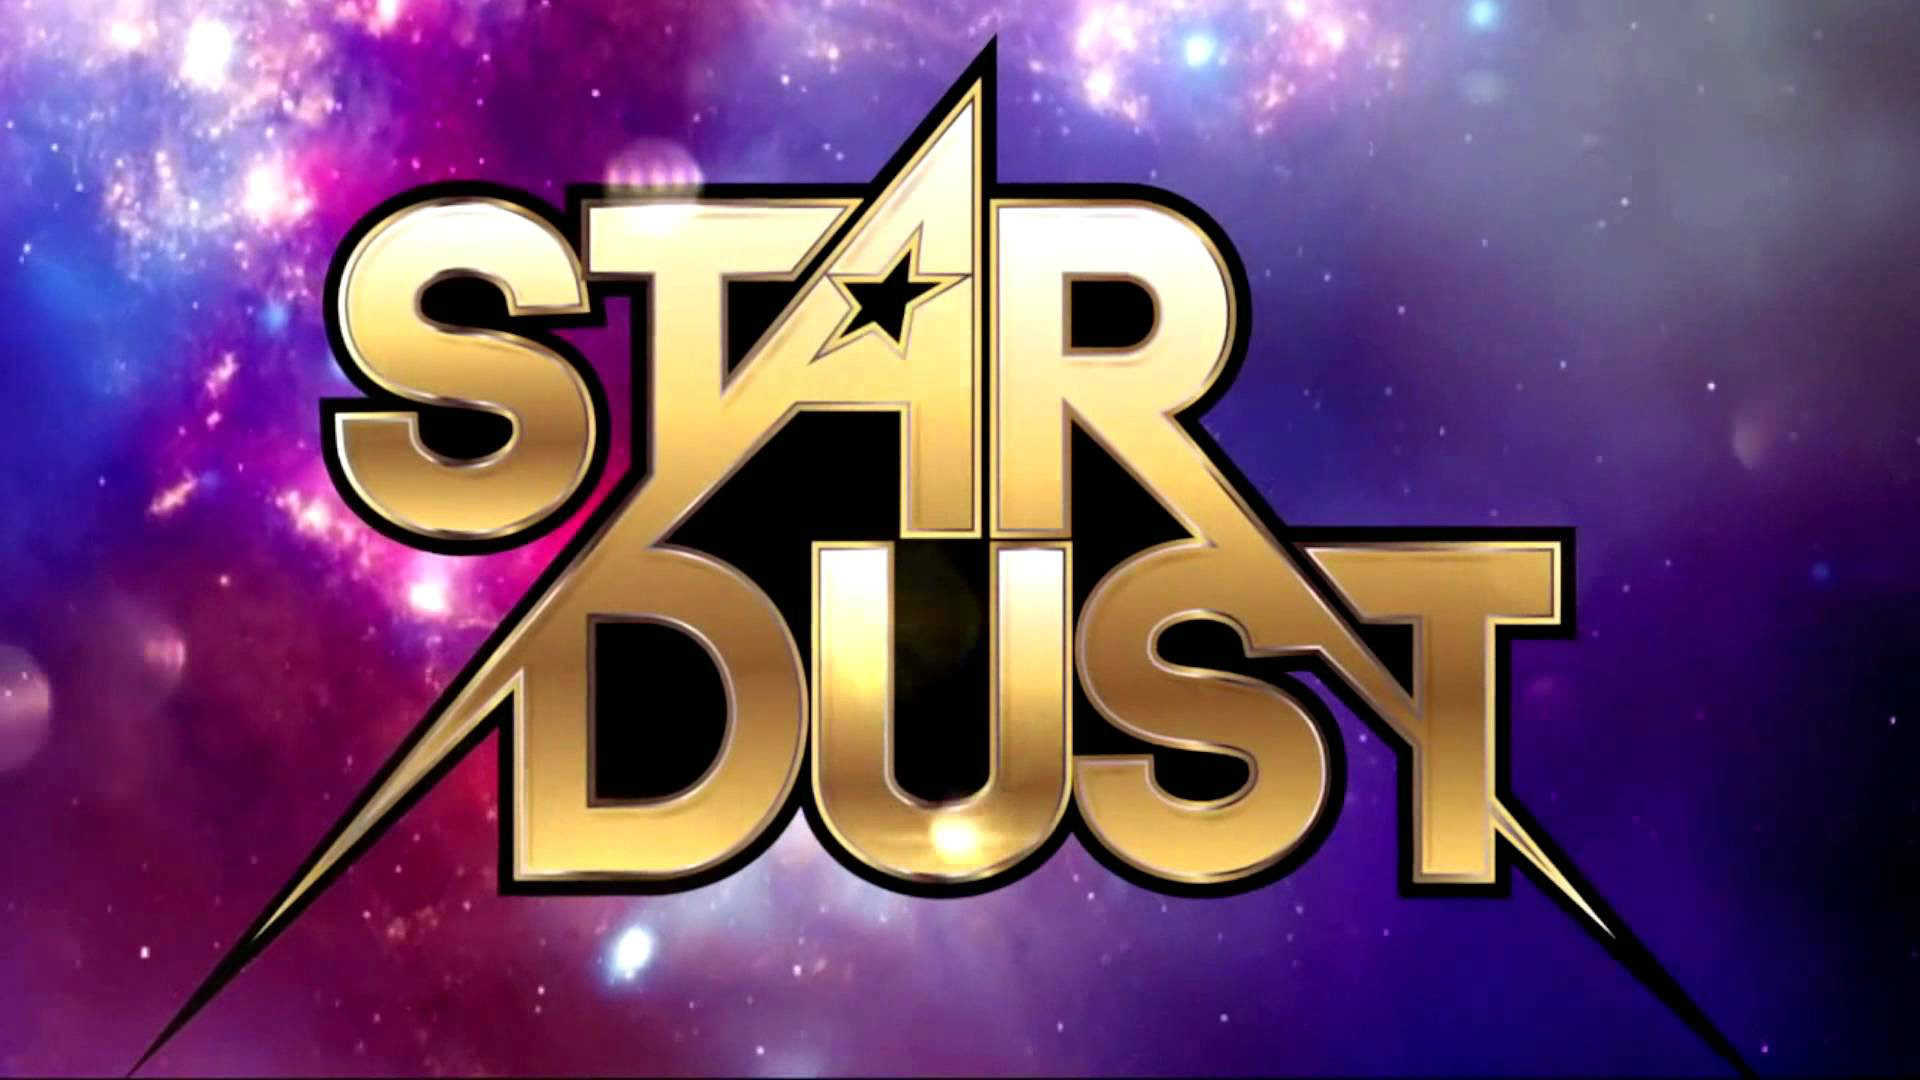 1920x1080 WWE Stardust Wallpaper for Desktop